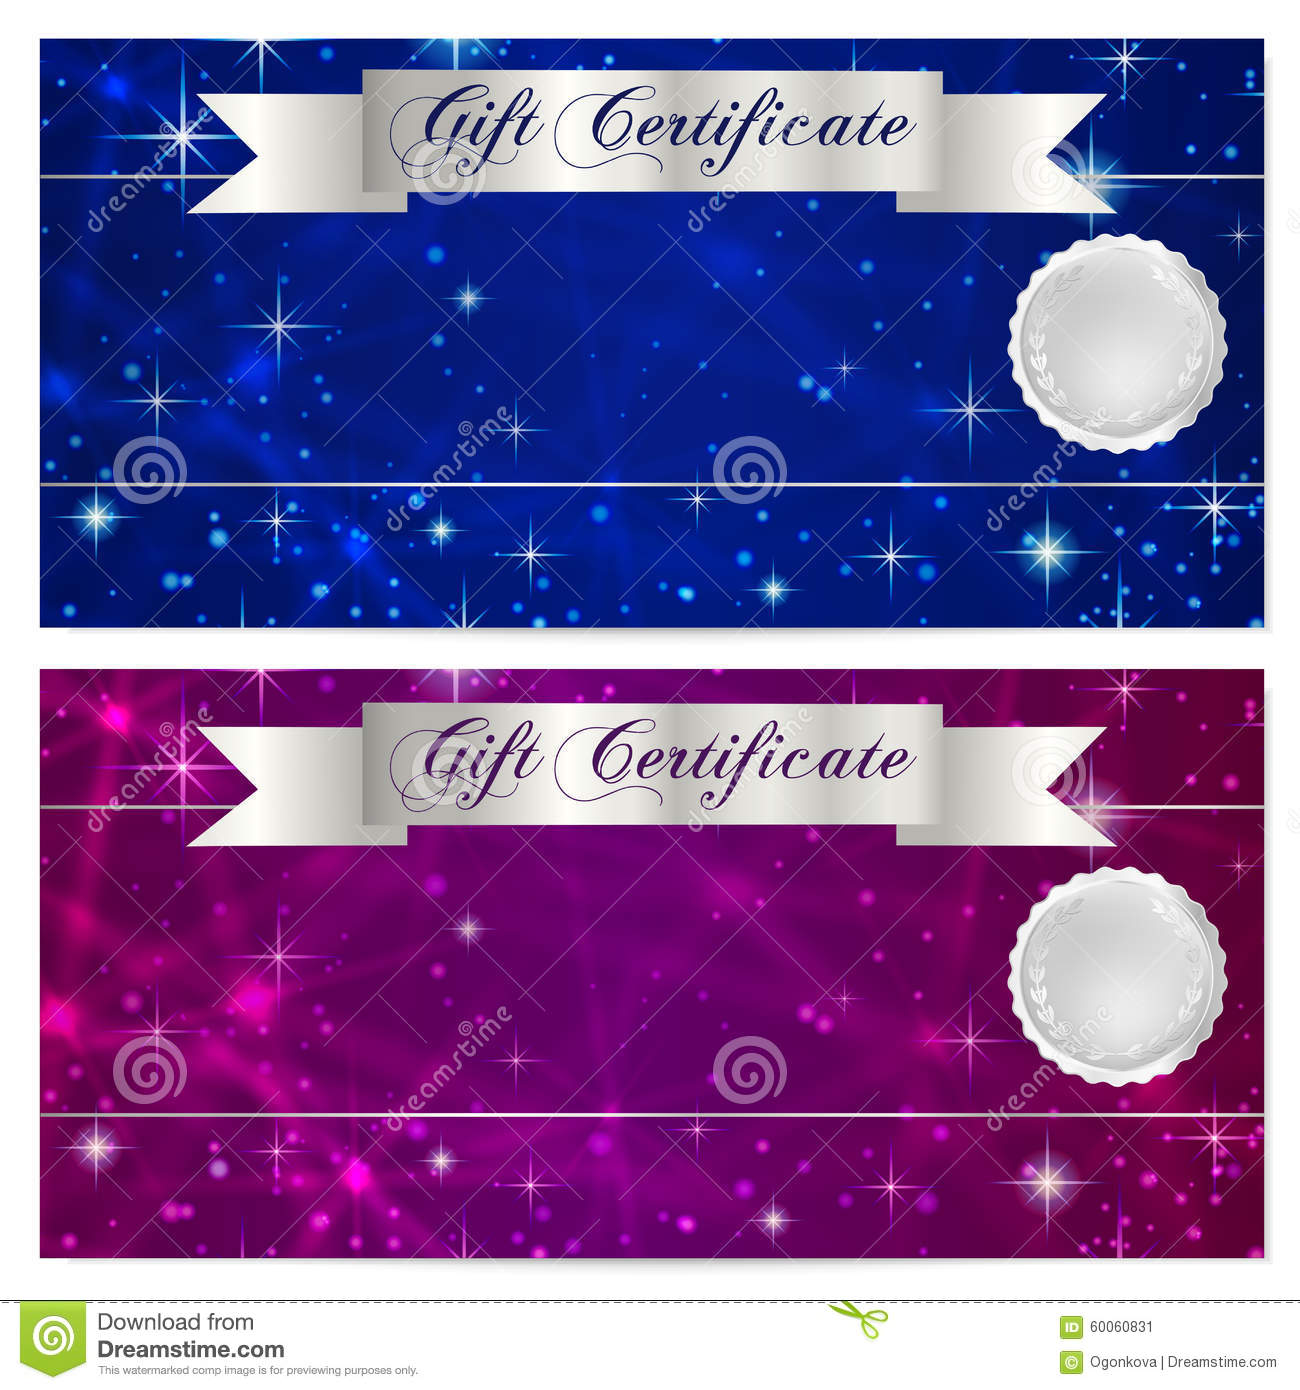 Gift certificate voucher coupon reward or gift card template with gift certificate voucher coupon reward or gift card template with sparkling twinkling stars texture pattern night sky cartoon vector yadclub Image collections